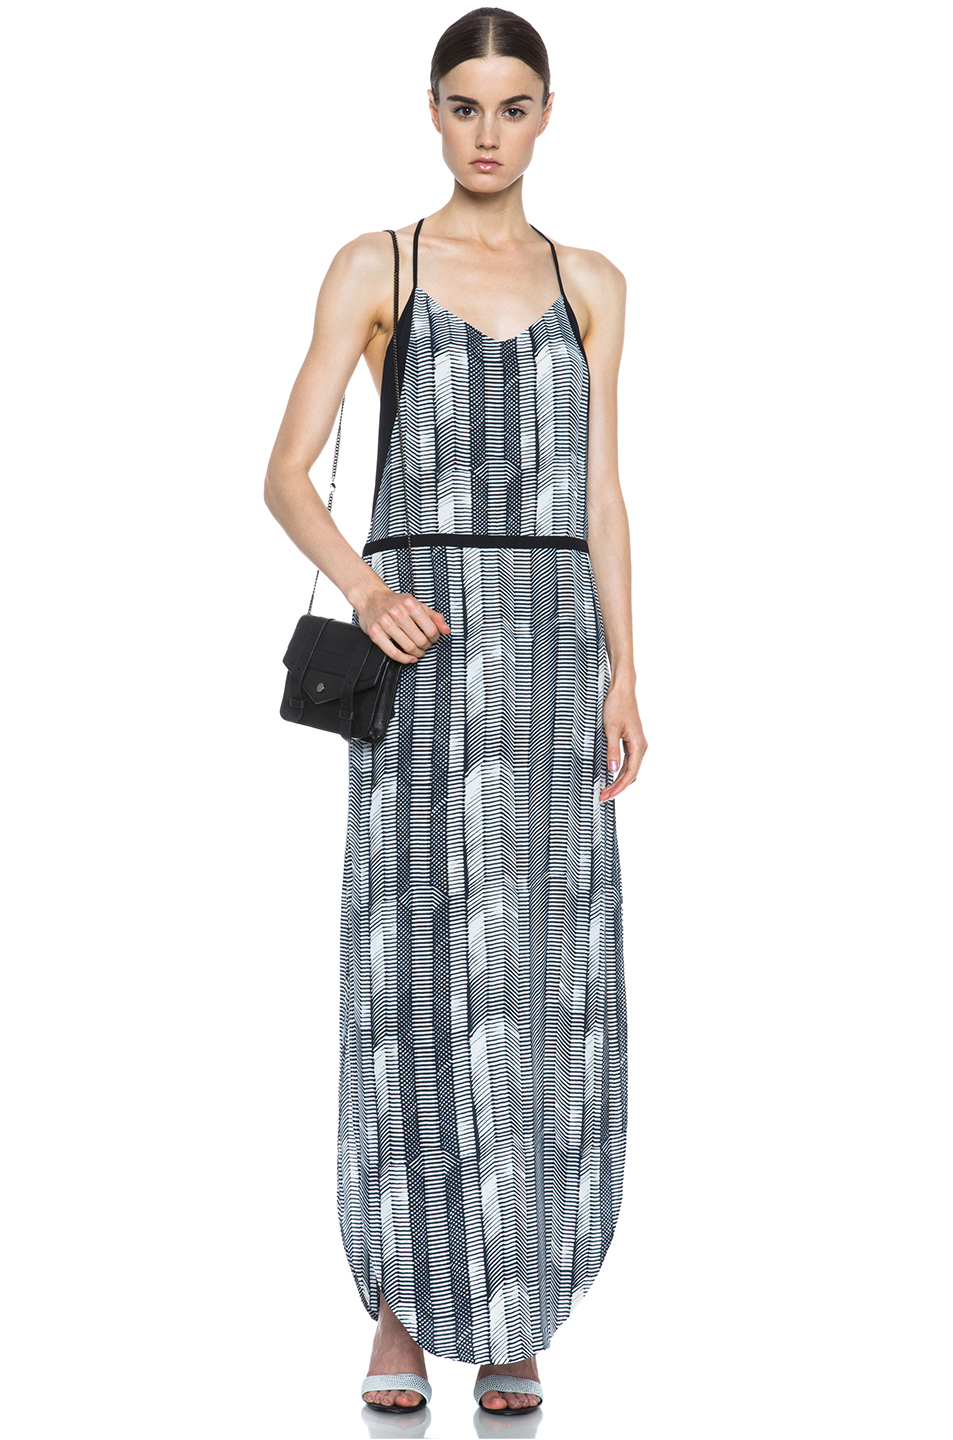 Sass & Bide|Grass Roots Viscose Dress in Print